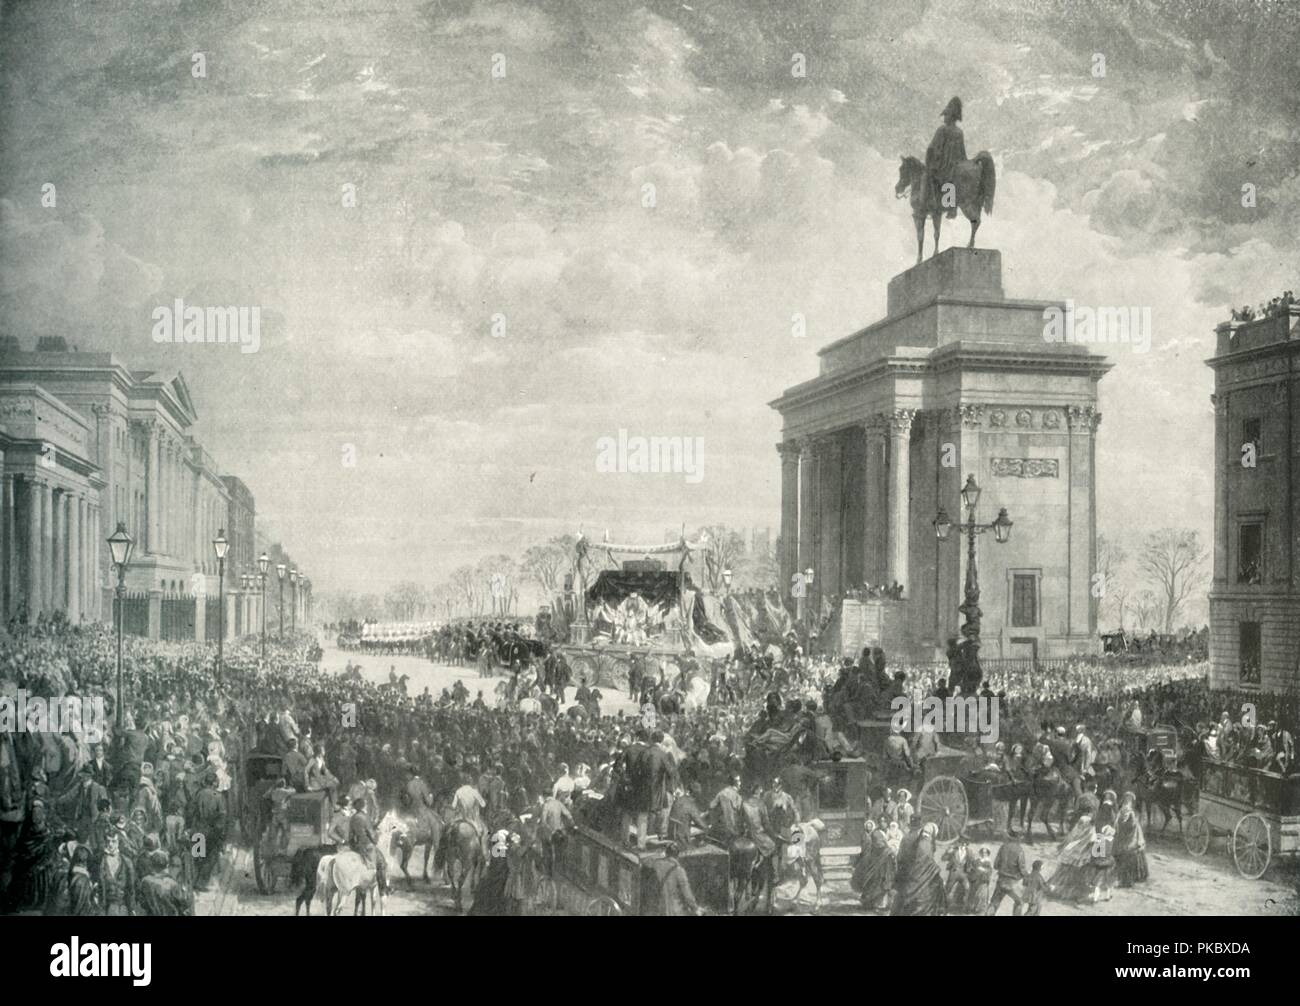 'The Funeral of the Duke of Wellington Passing Apsley House, November 18, 1852', (c1897). Crowds in London for the funeral of soldier and prime minister Arthur Wellesley (1769-1852) the 'Iron Duke' who had been a trusted advisor to Queen Victoria who named her third son after him. On the right is an equestrian statue of him on top of the Wellington Arch. From Sixty Years A Queen: The Story of Her Majesty's Reign, by Sir Herbert Maxwell. [Harmsworth Bros, Limited, London, c1897] - Stock Image